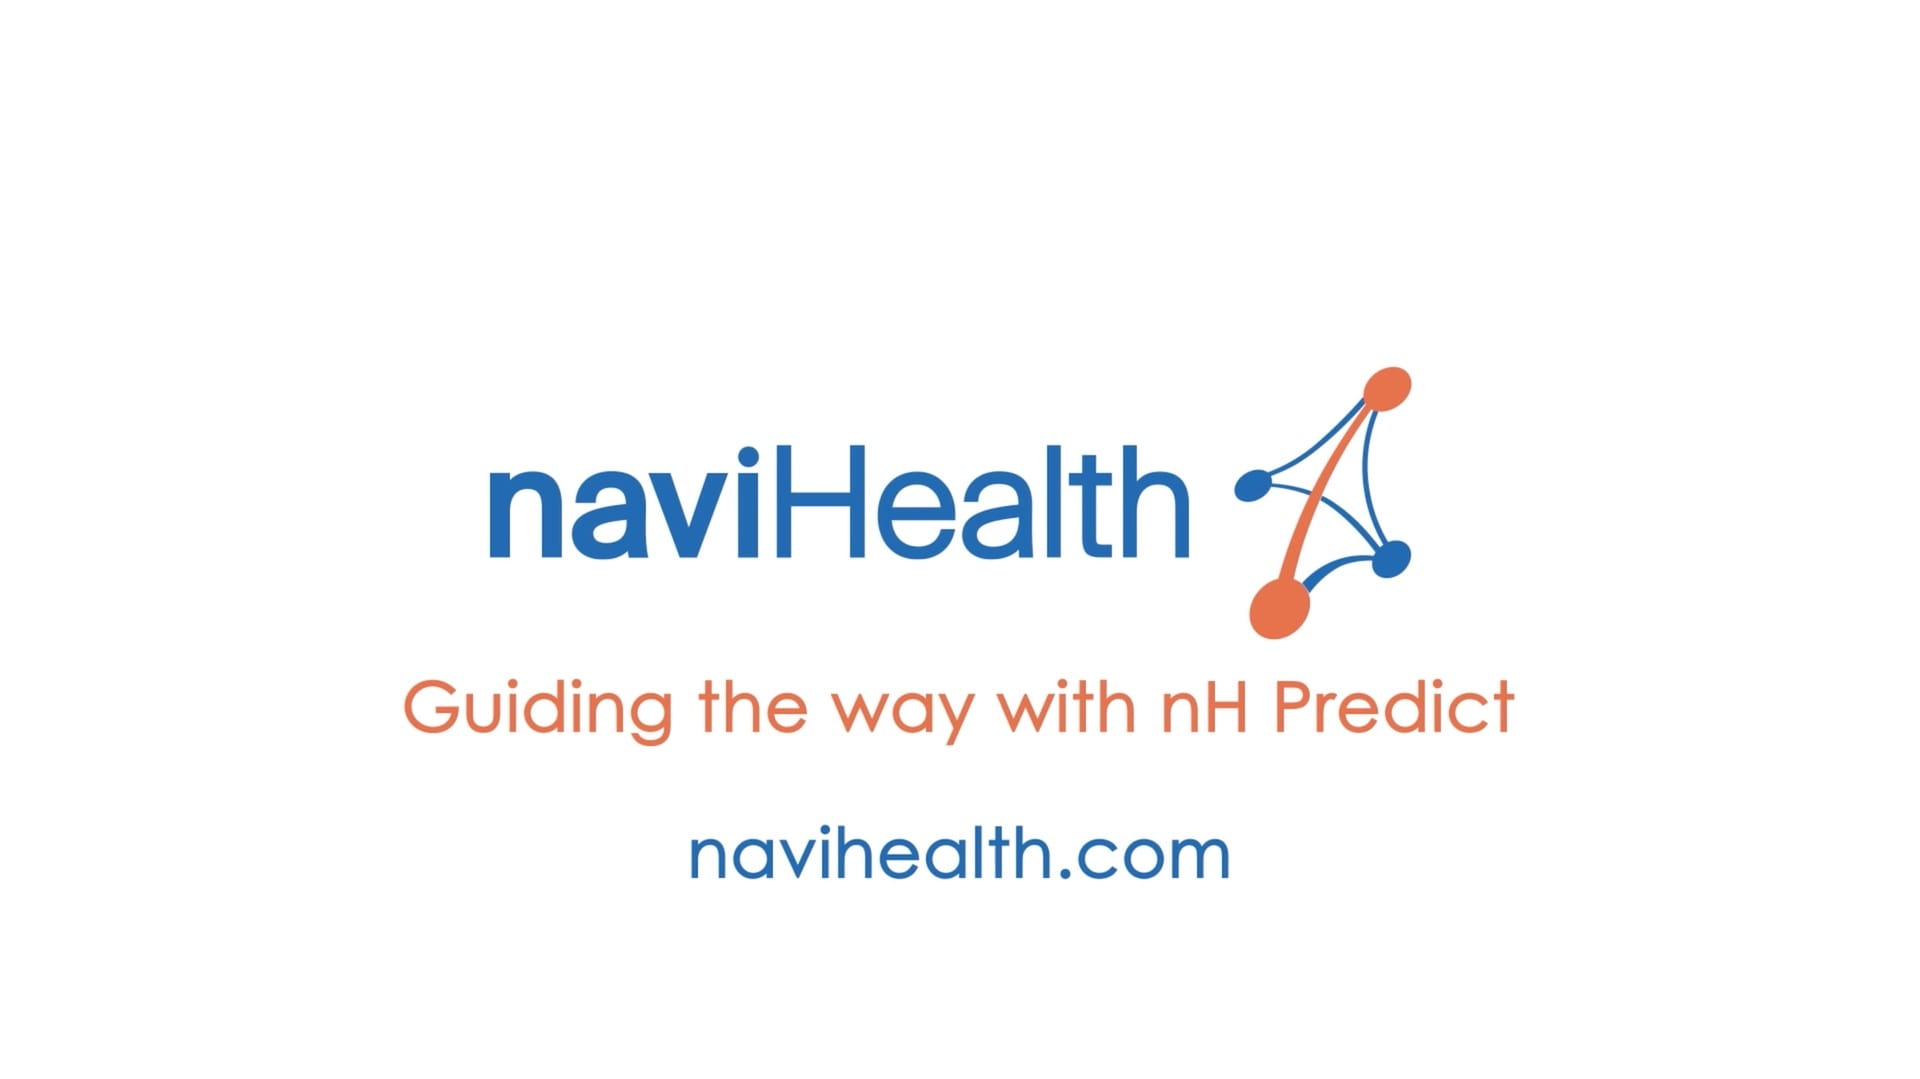 naviHealth logo on white background for their nH Predict animated explainer video